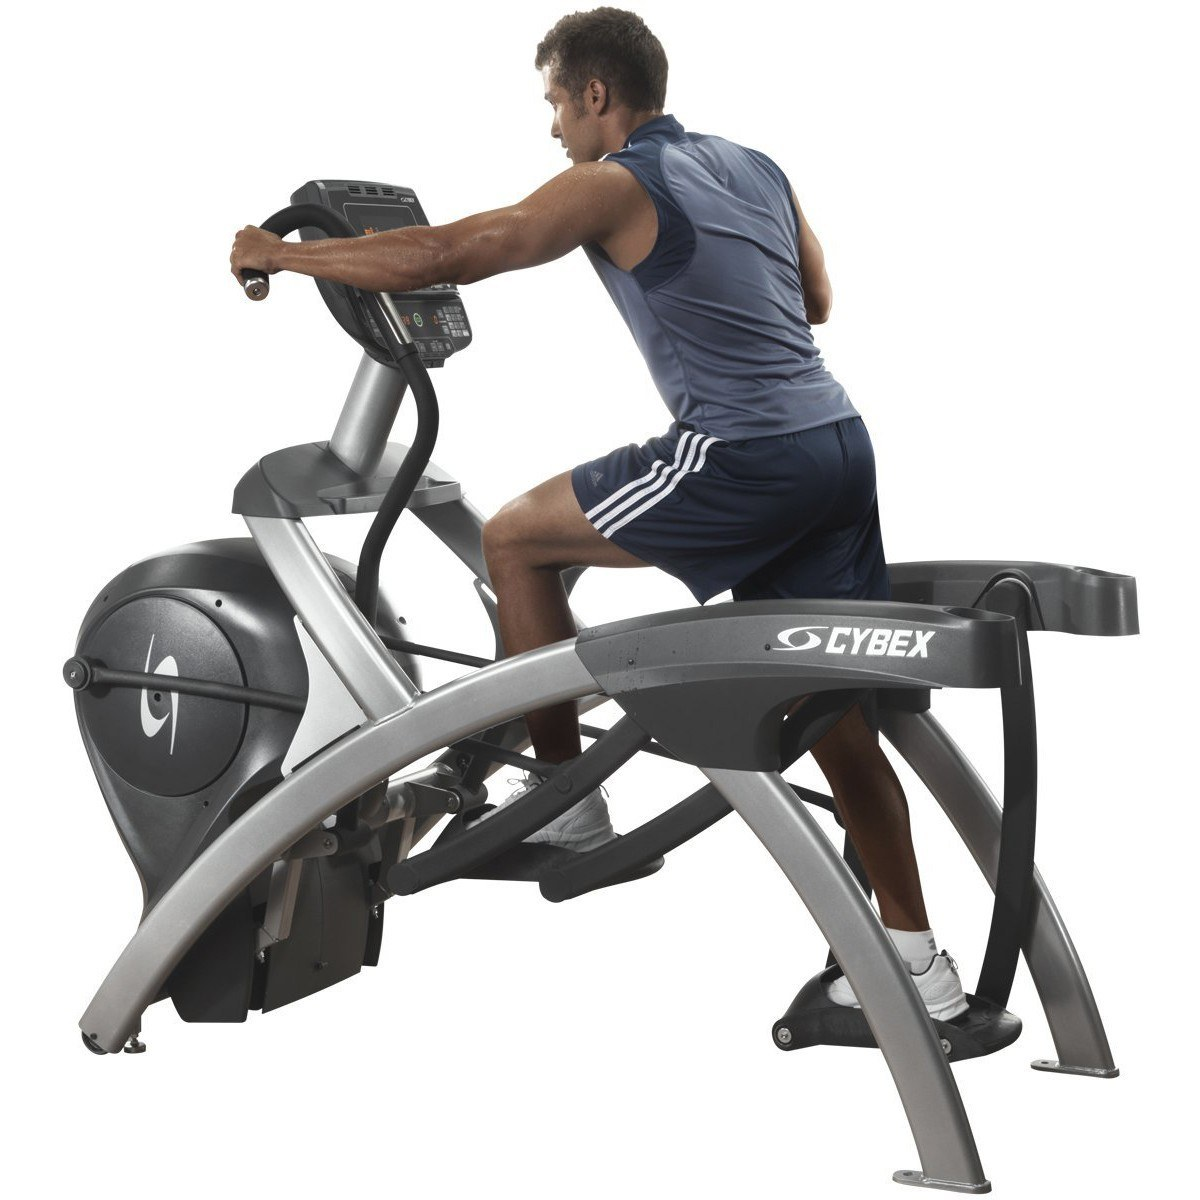 Cybex Treadmill Workouts: Cybex Arc Cross Trainer Full Body Workout.